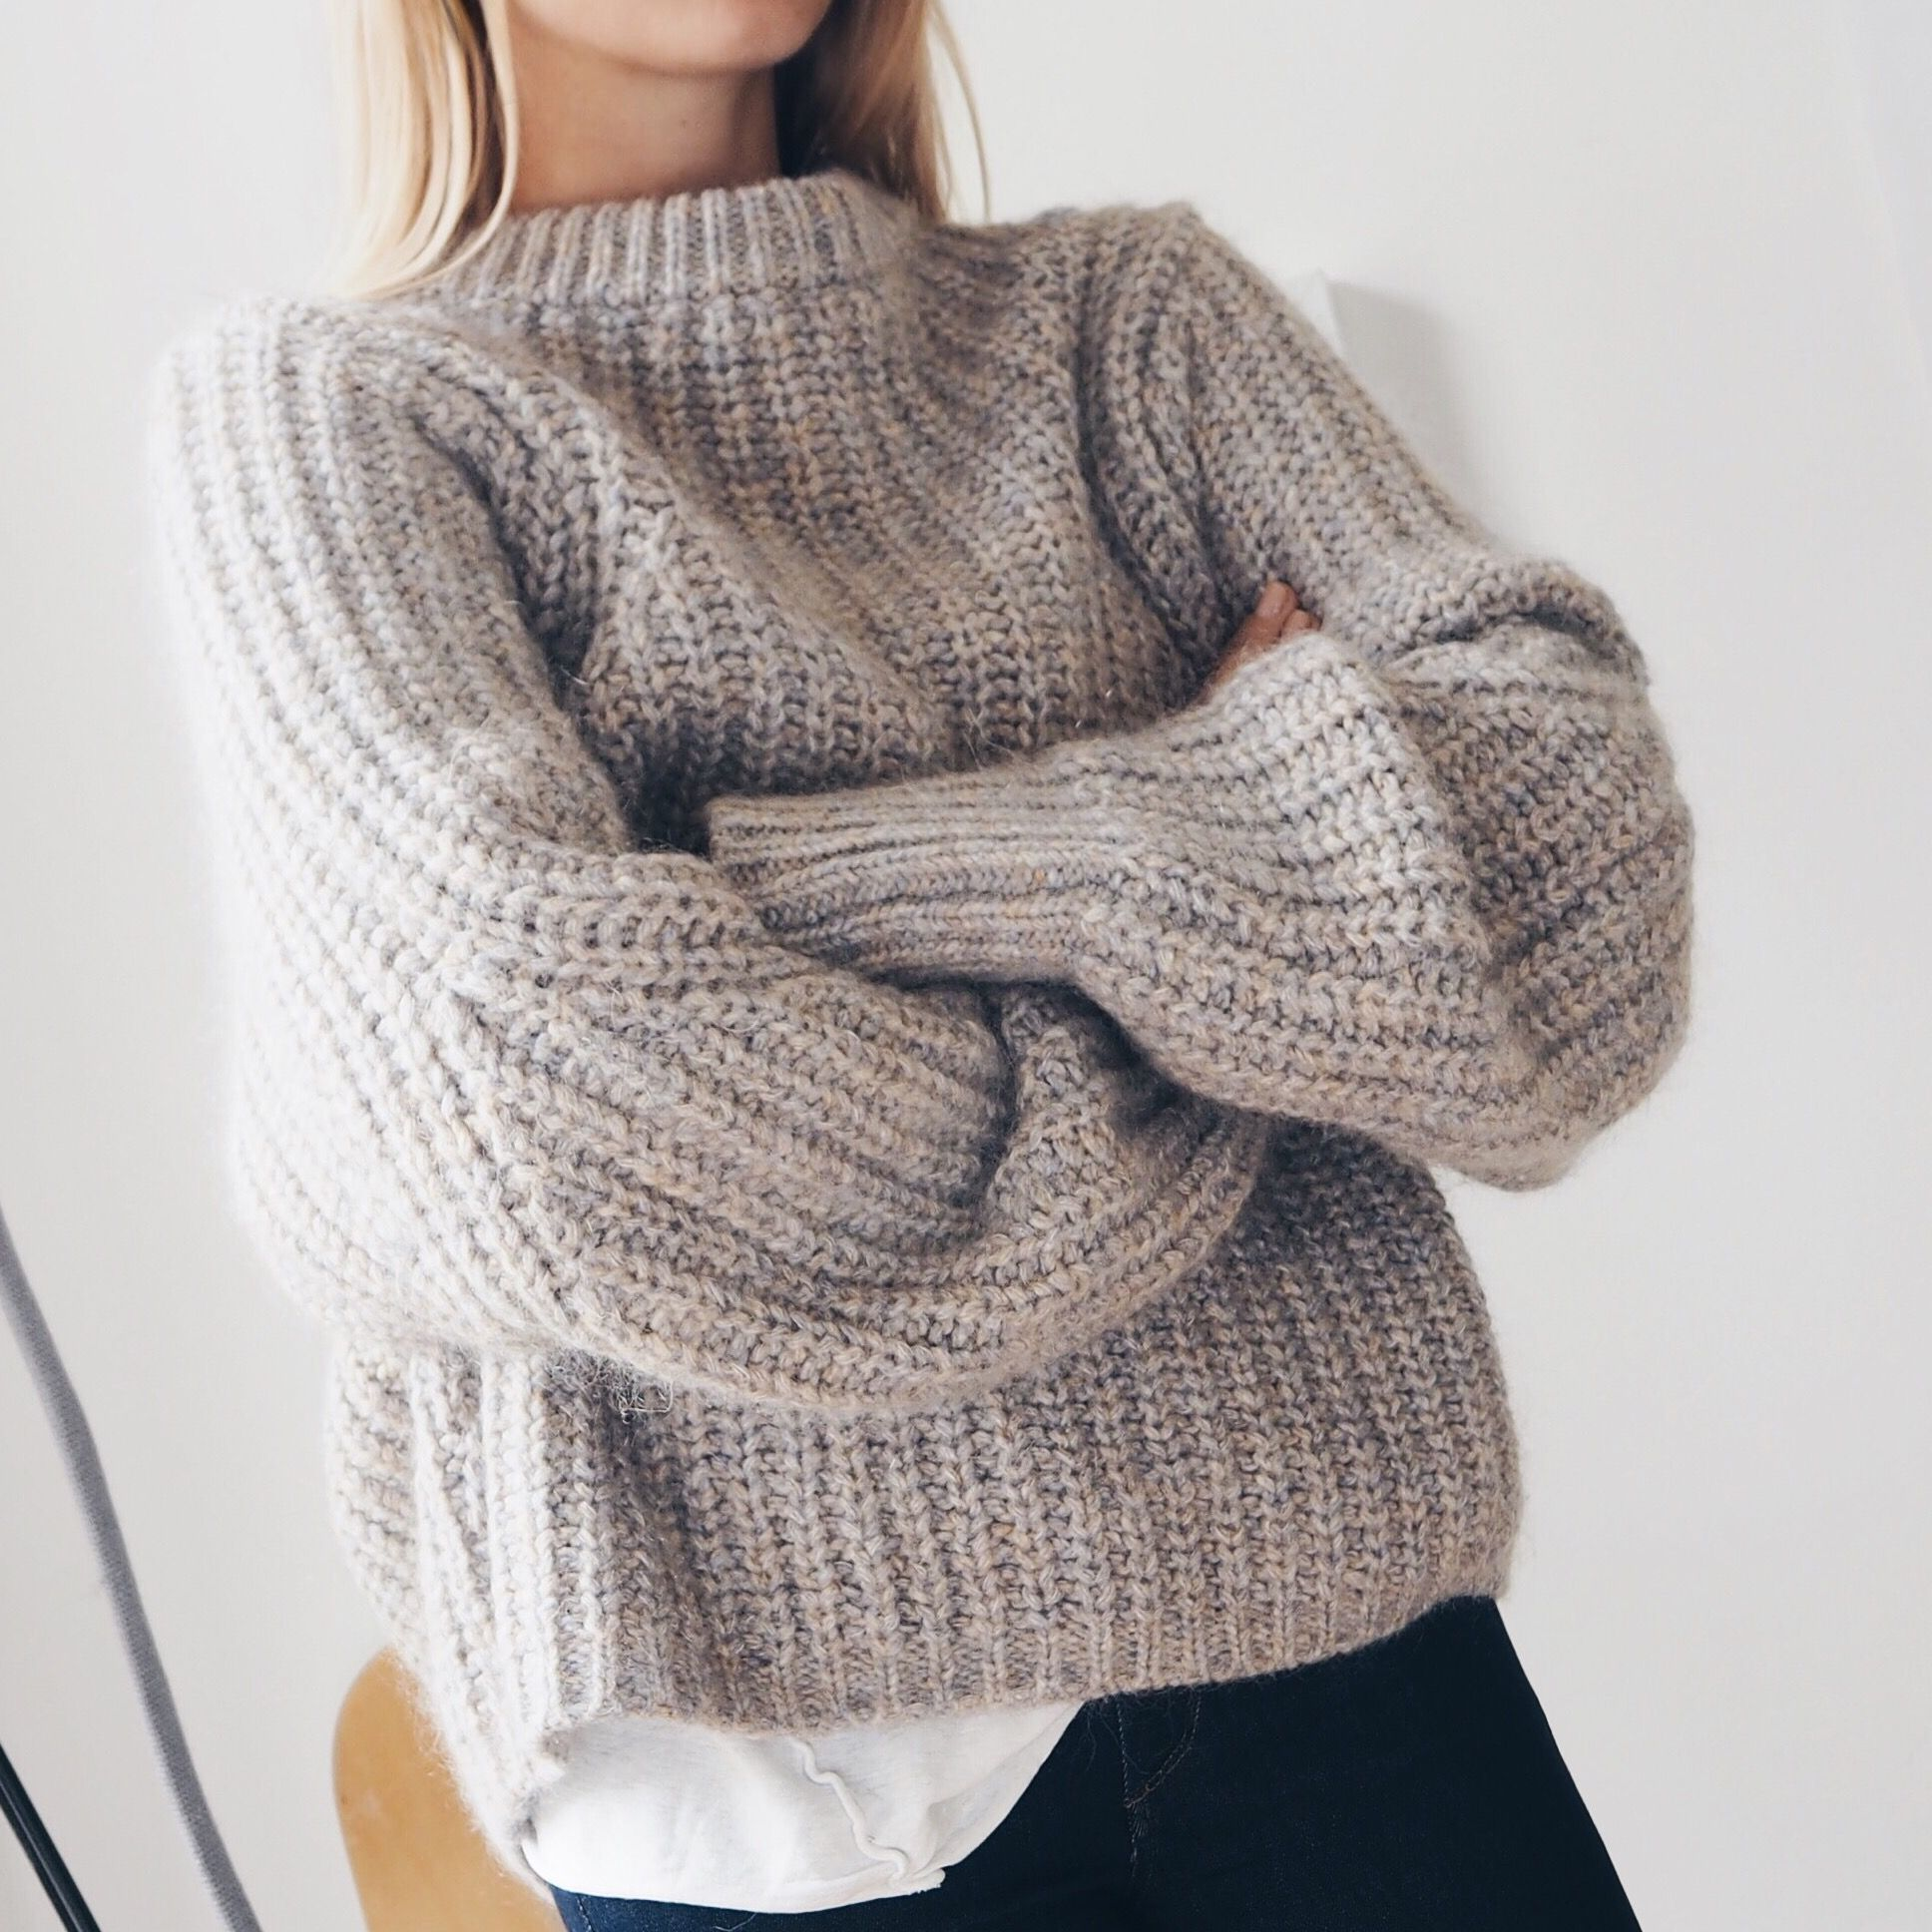 Isabel Marant knit jumper, Bassike tee & Citizens of Humanity ...